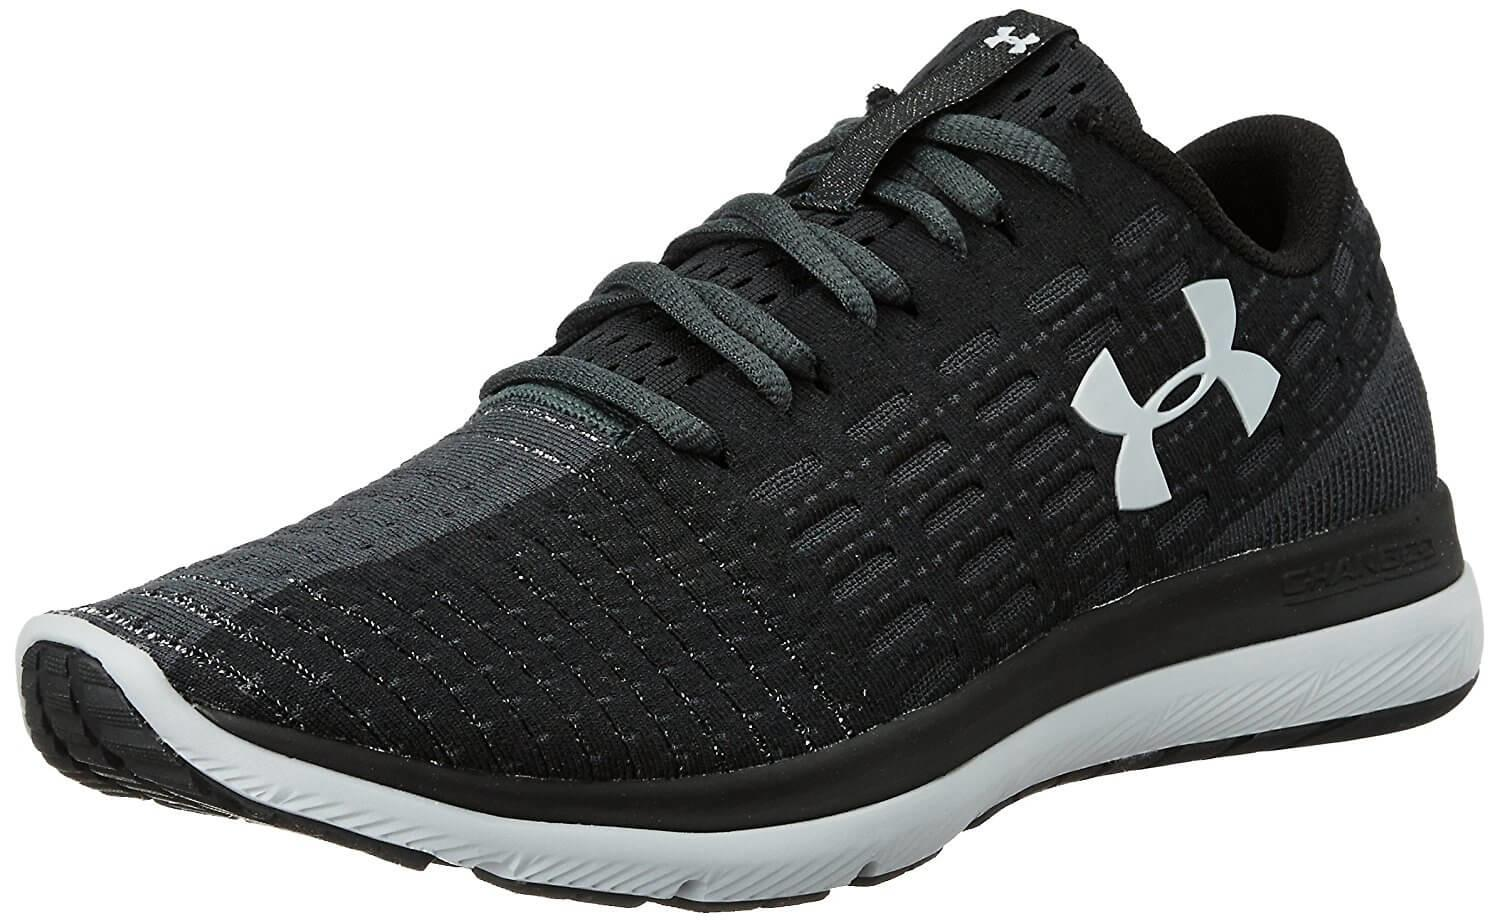 434895a7983 Under armour threadborne slingflex in mar jpg 1500x923 Under armour running